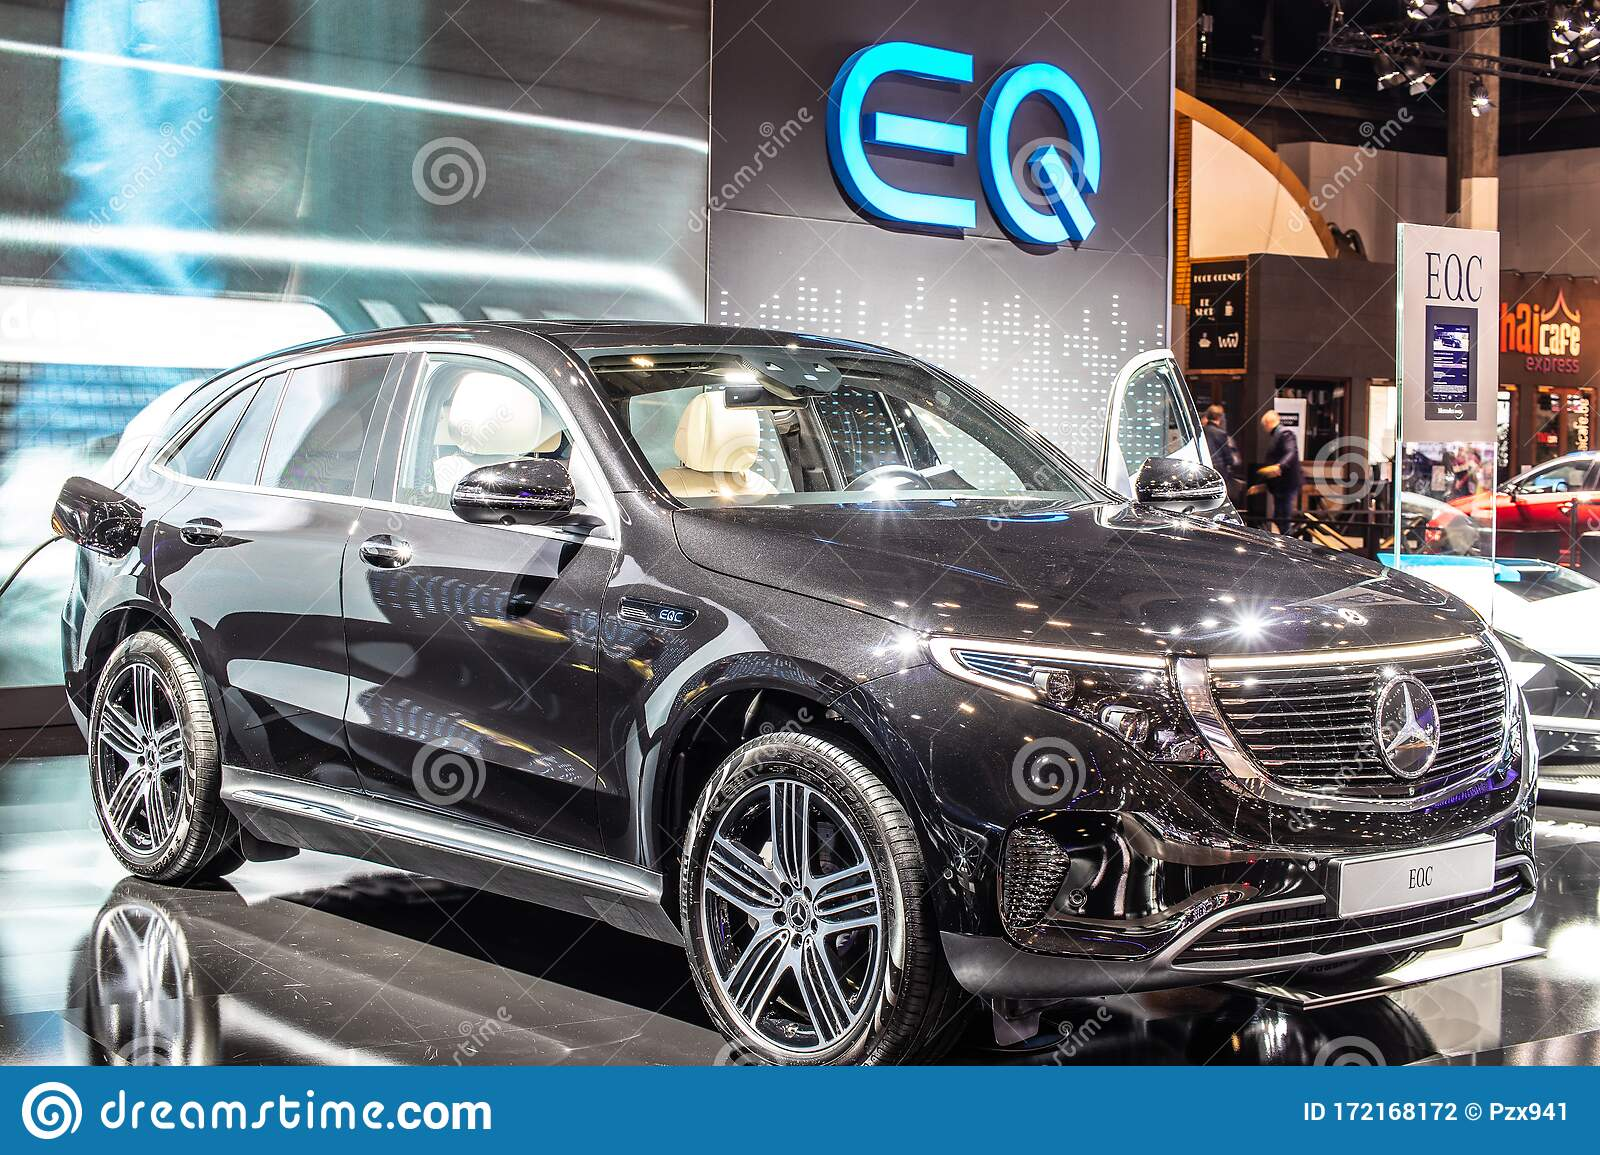 Electric Mercedes Eqc 400 4matic 300kw Suv 2020 Model Year Eq Brand At Brussels Motor Show Produced By Mercedes Benz Editorial Photography Image Of Mercedesbenz Battery 172168172